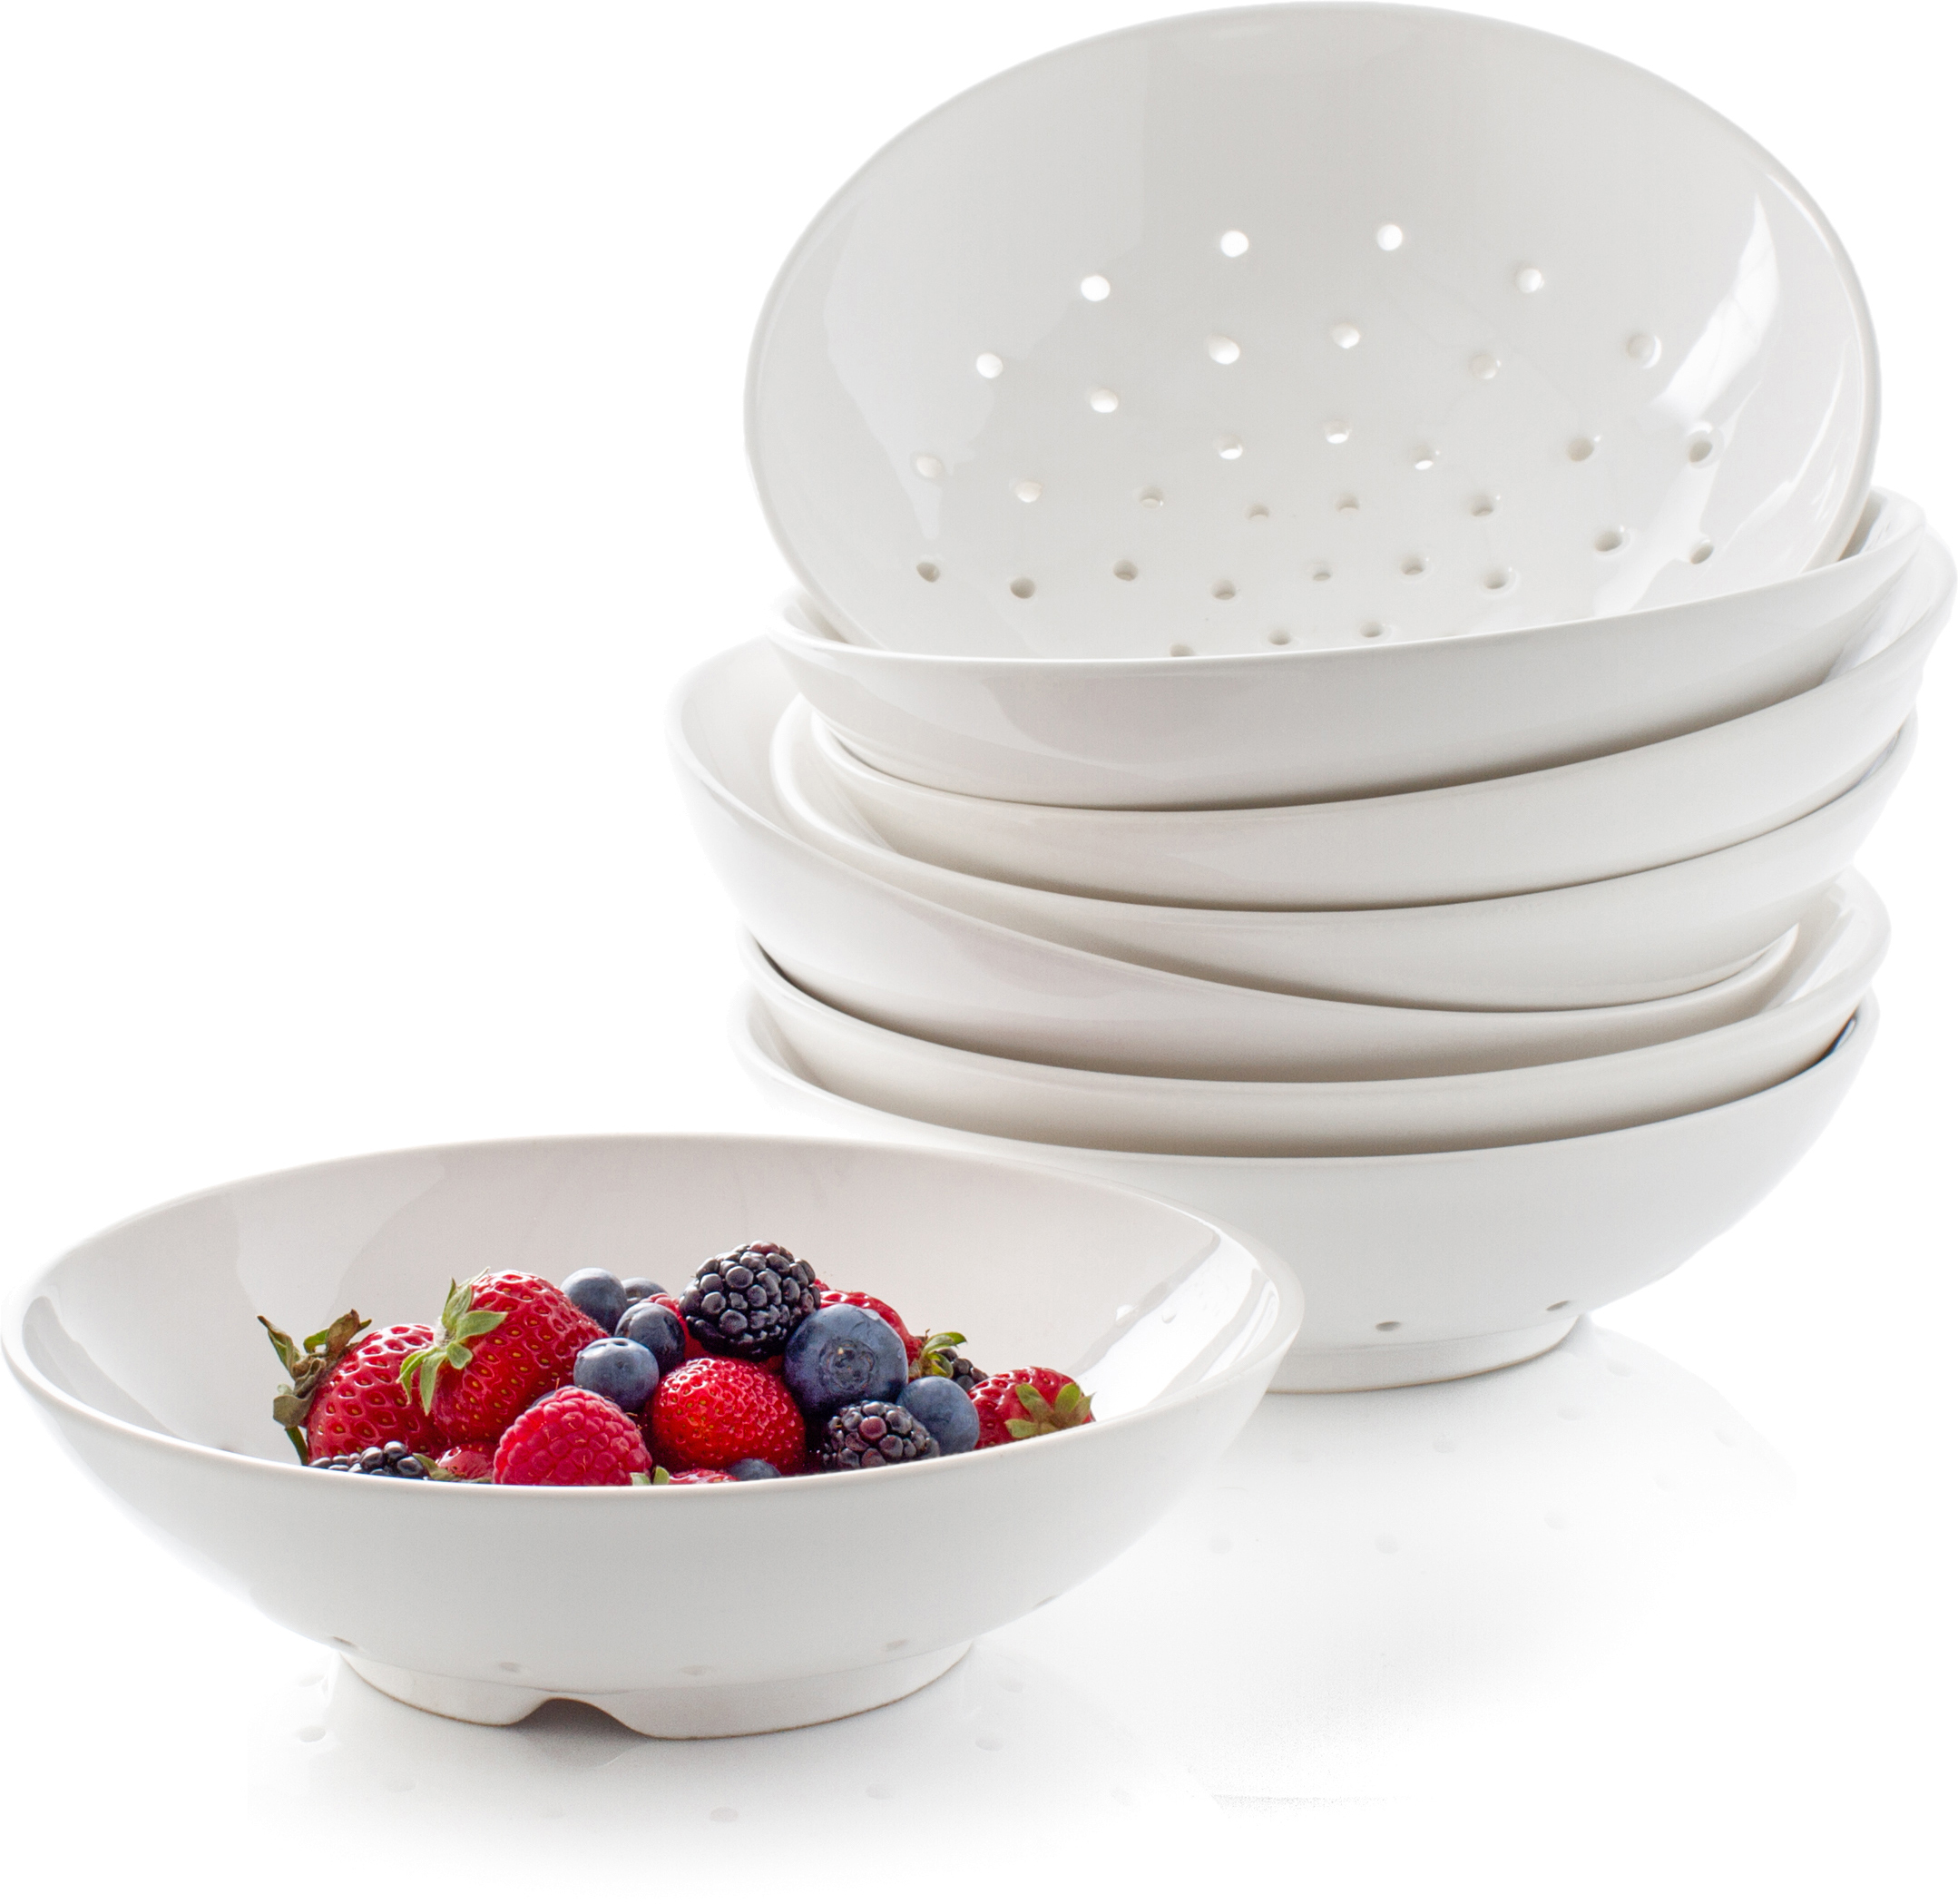 Hudson Grace's must-have berry bowl.      COURTESY HUDSON GRACE